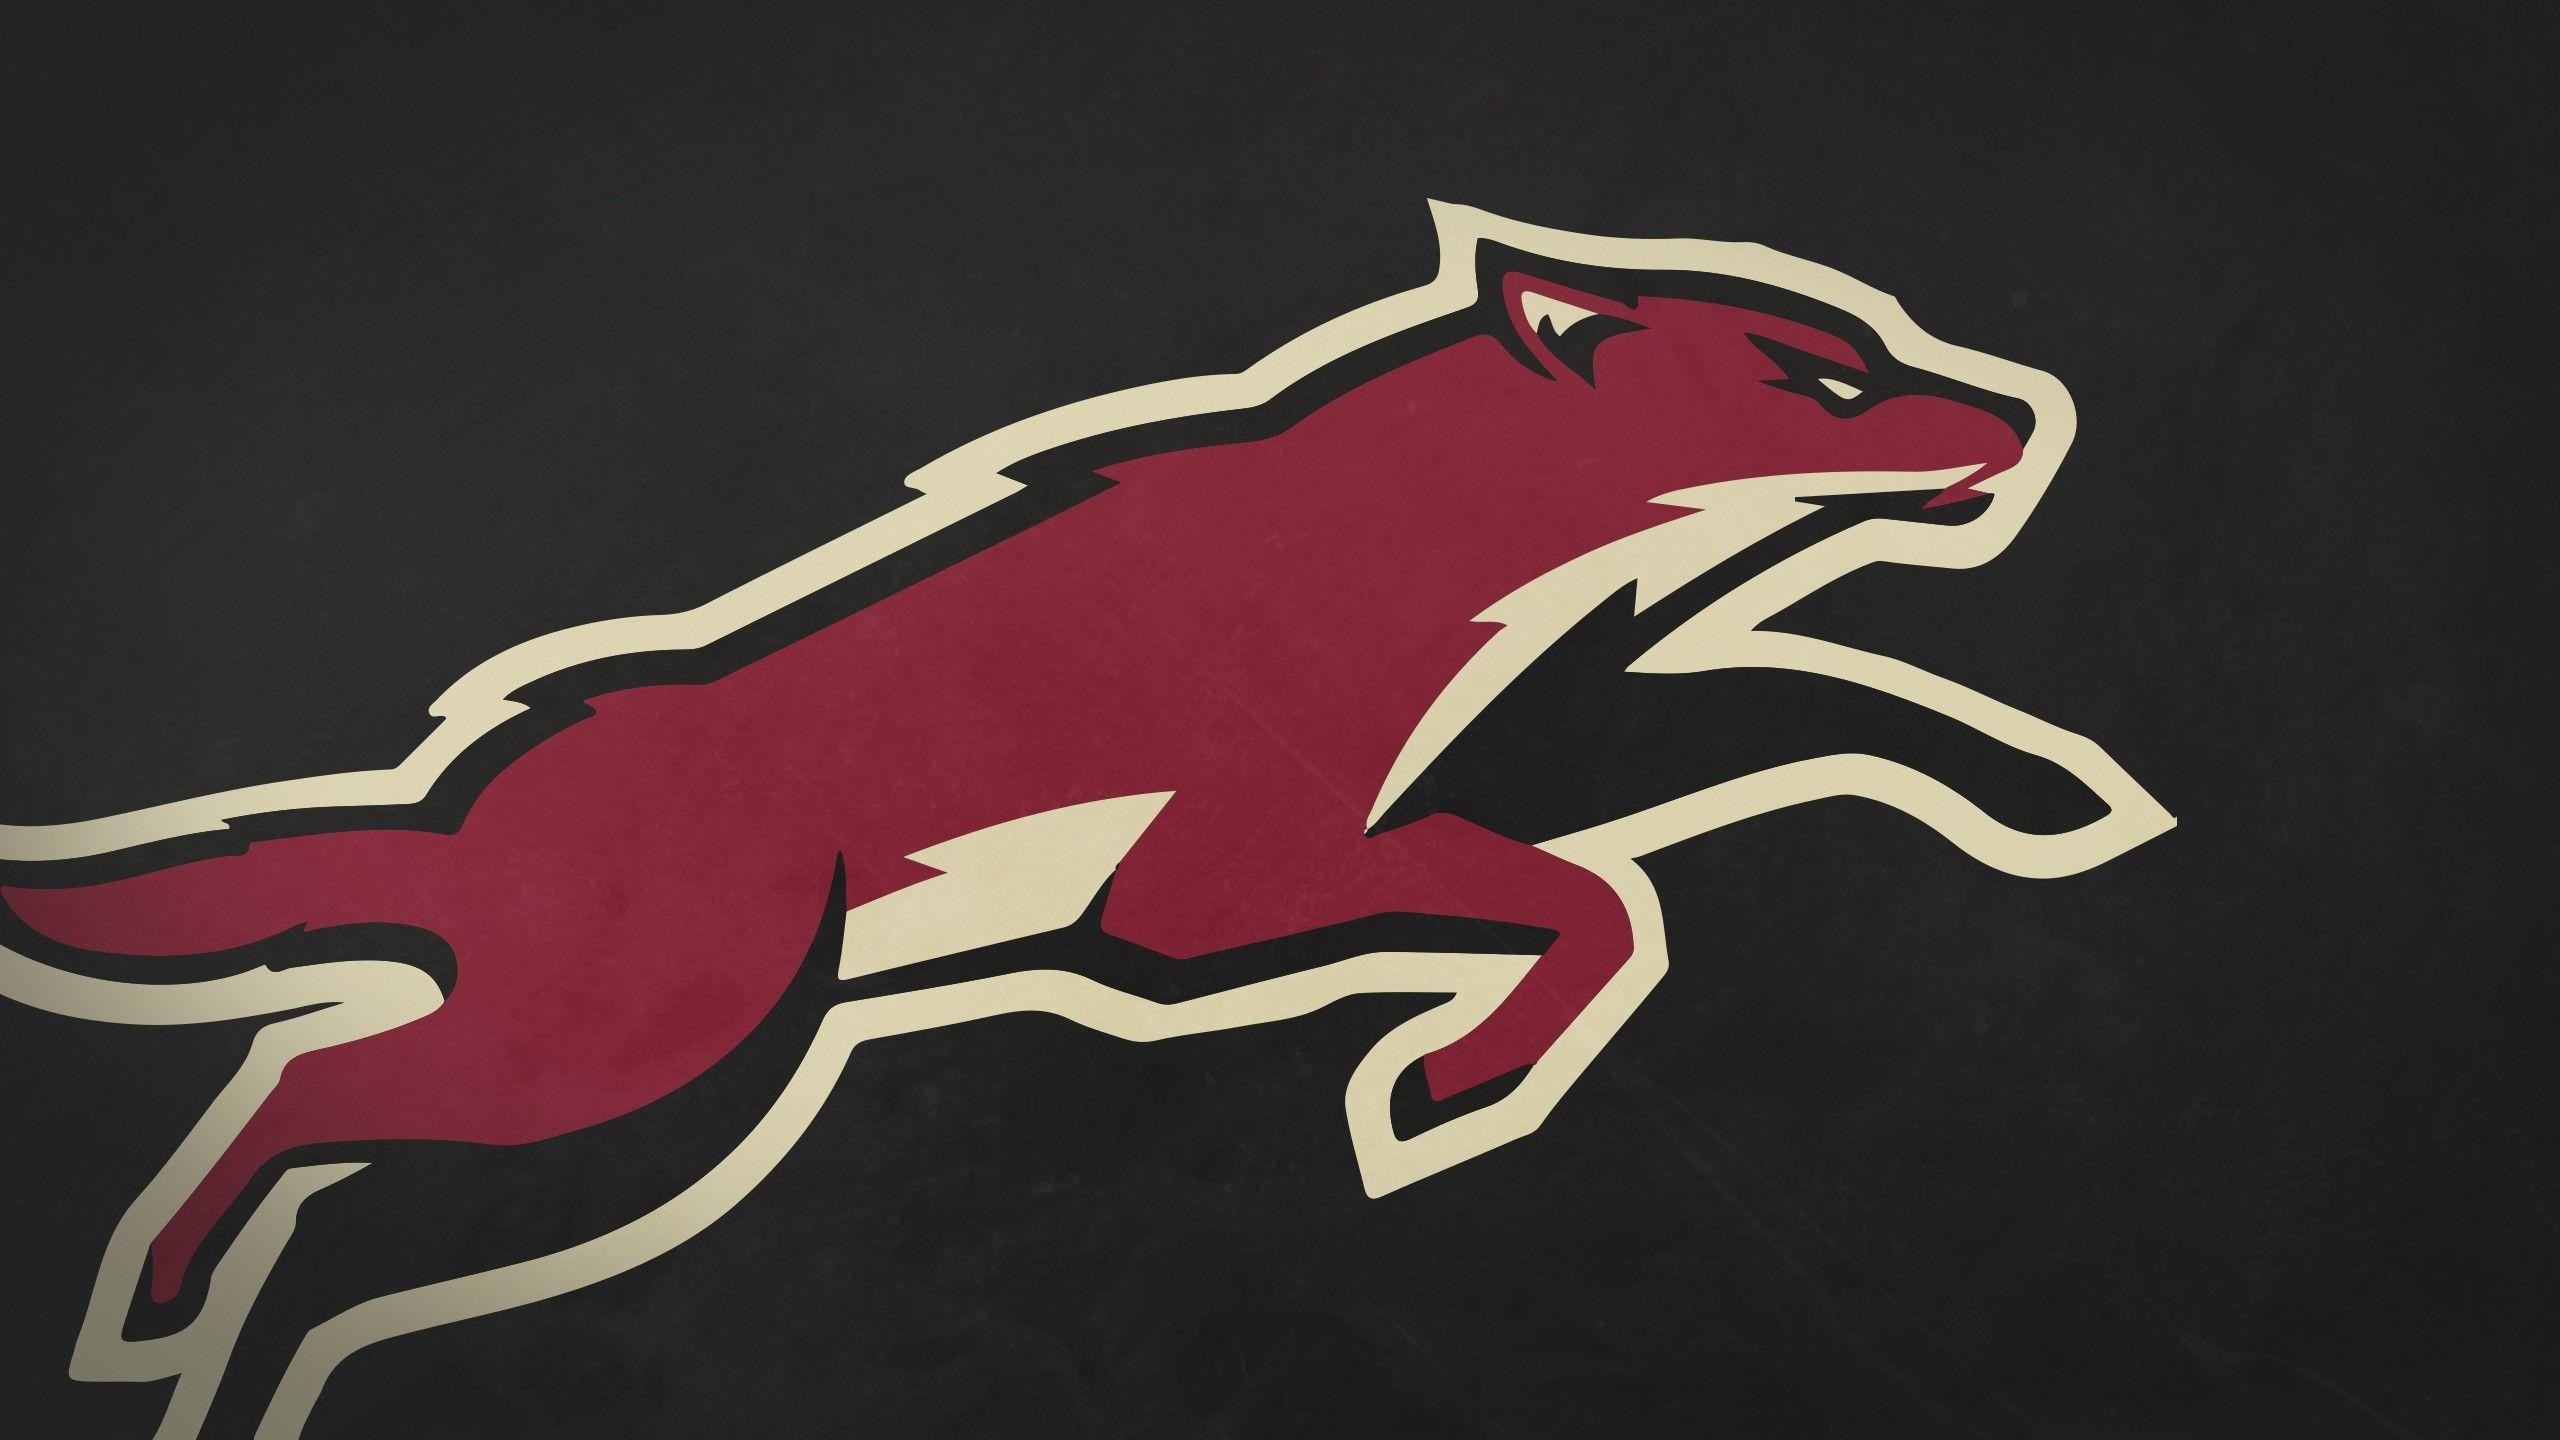 2560x1440 Phoenix Coyotes Wallpaper 15330  px ~ HDWallSource.